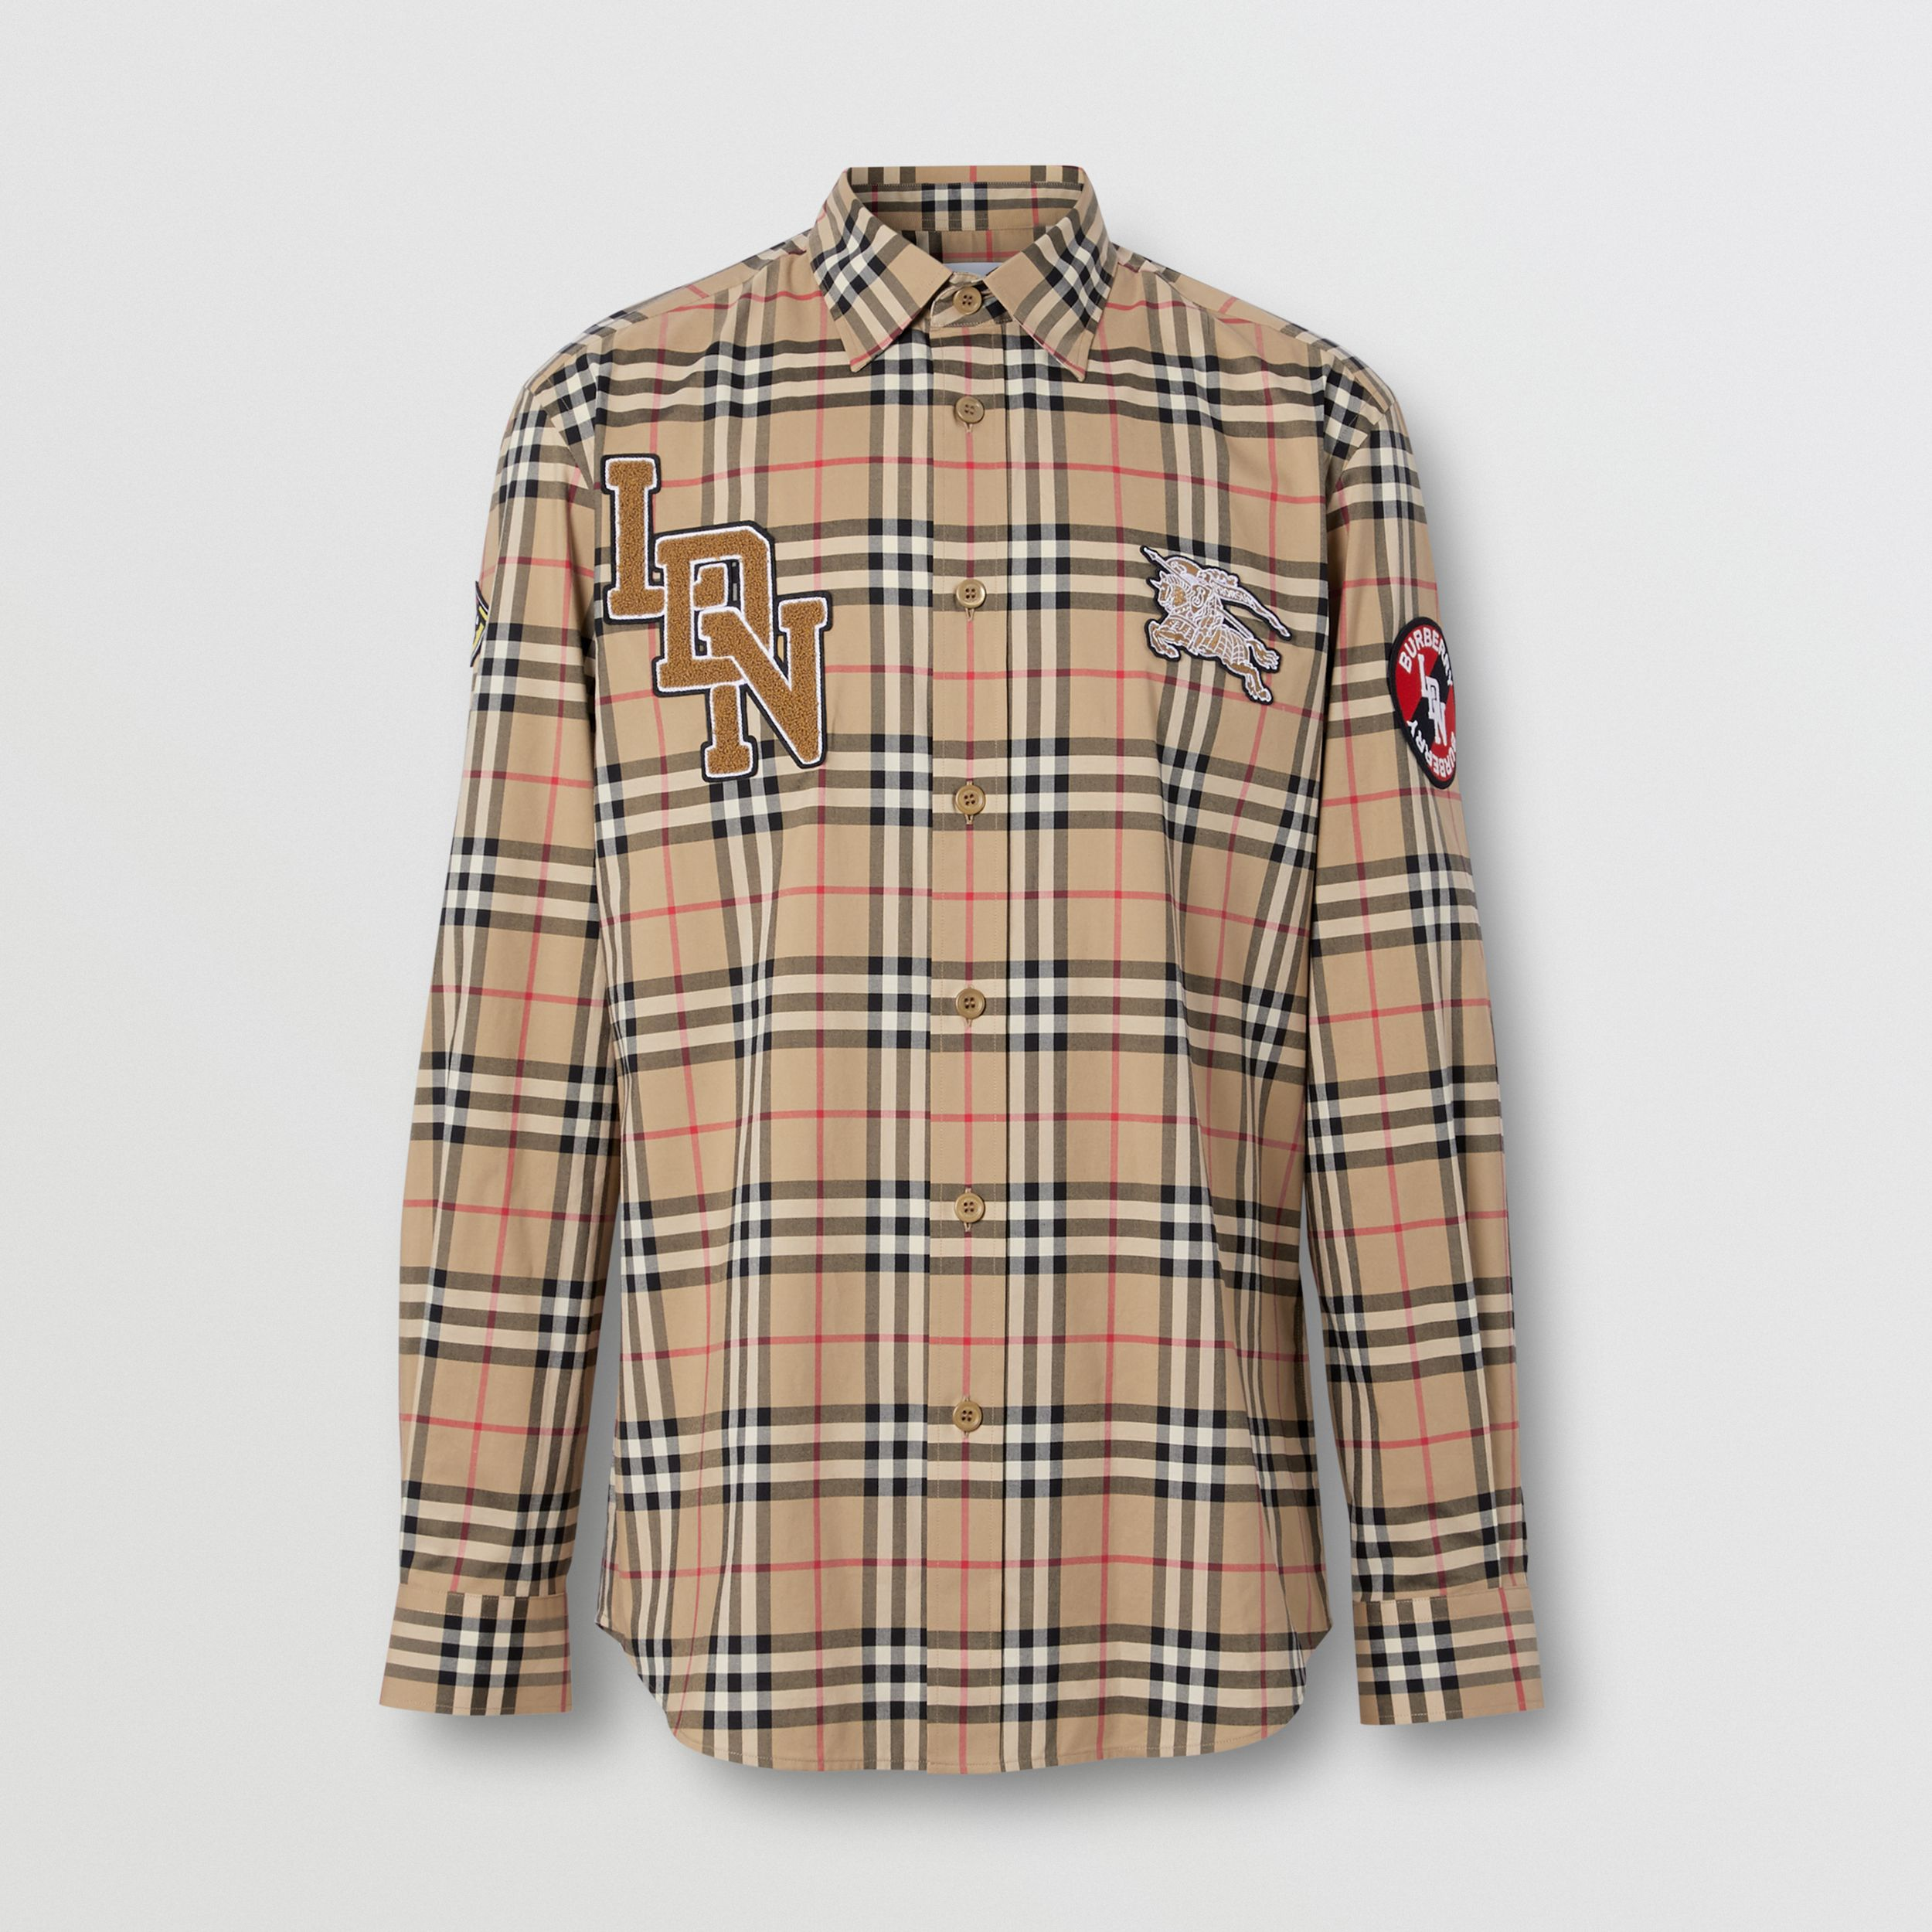 Classic Fit Logo Graphic Vintage Check Cotton Shirt in Archive Beige - Men | Burberry - 4